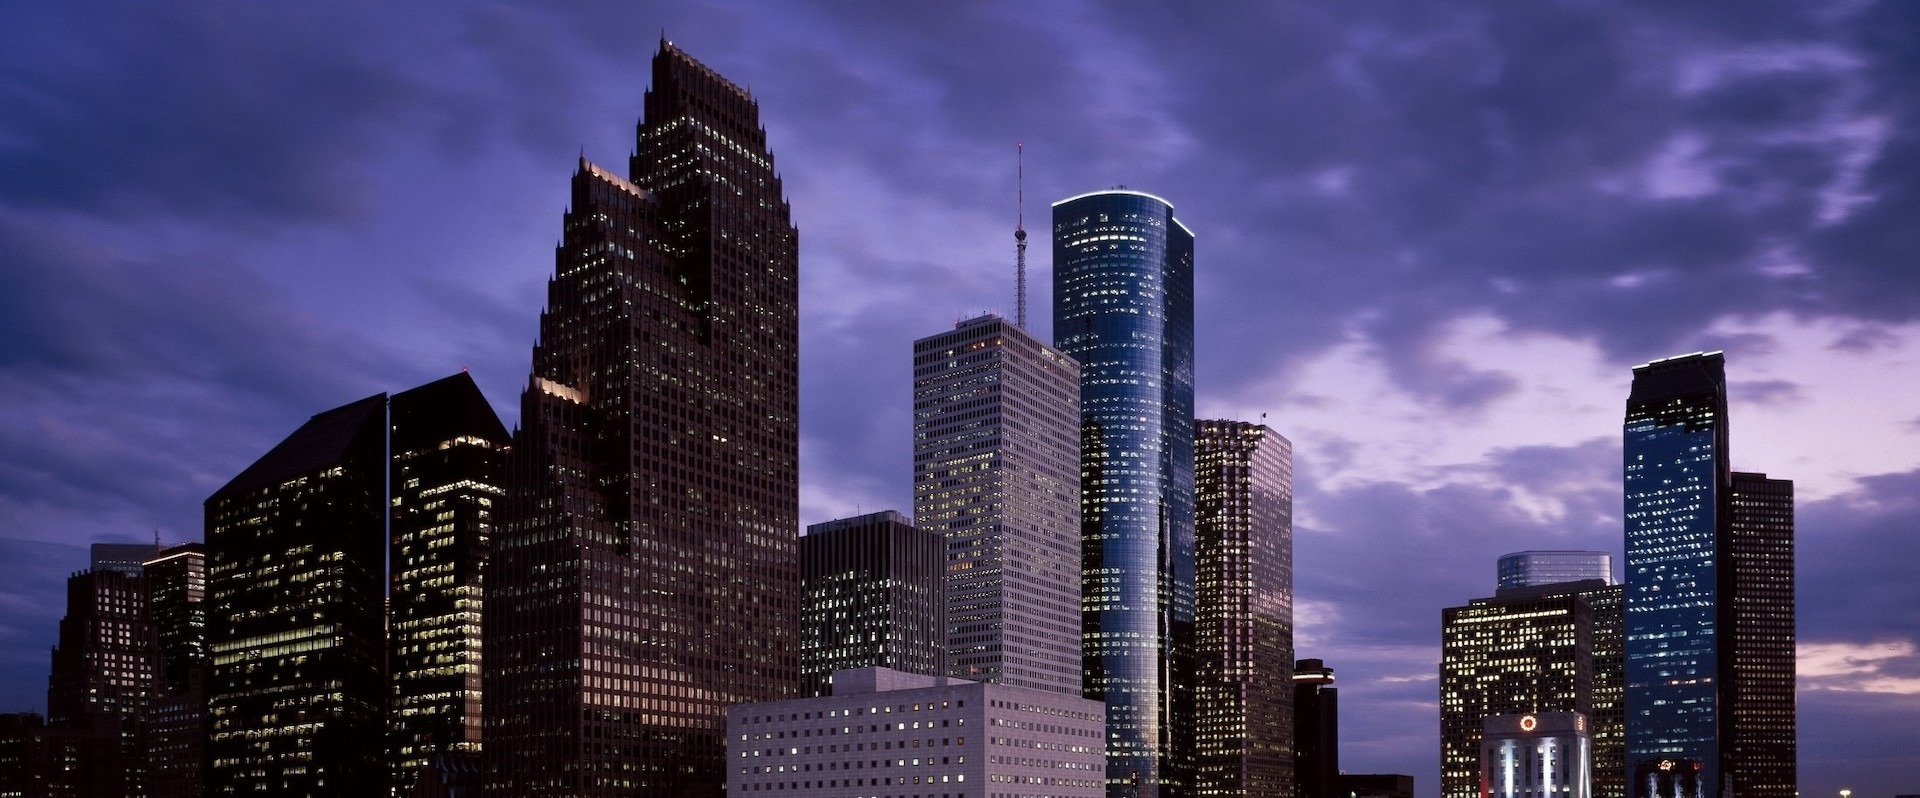 Houston, Texas, USA, skyline